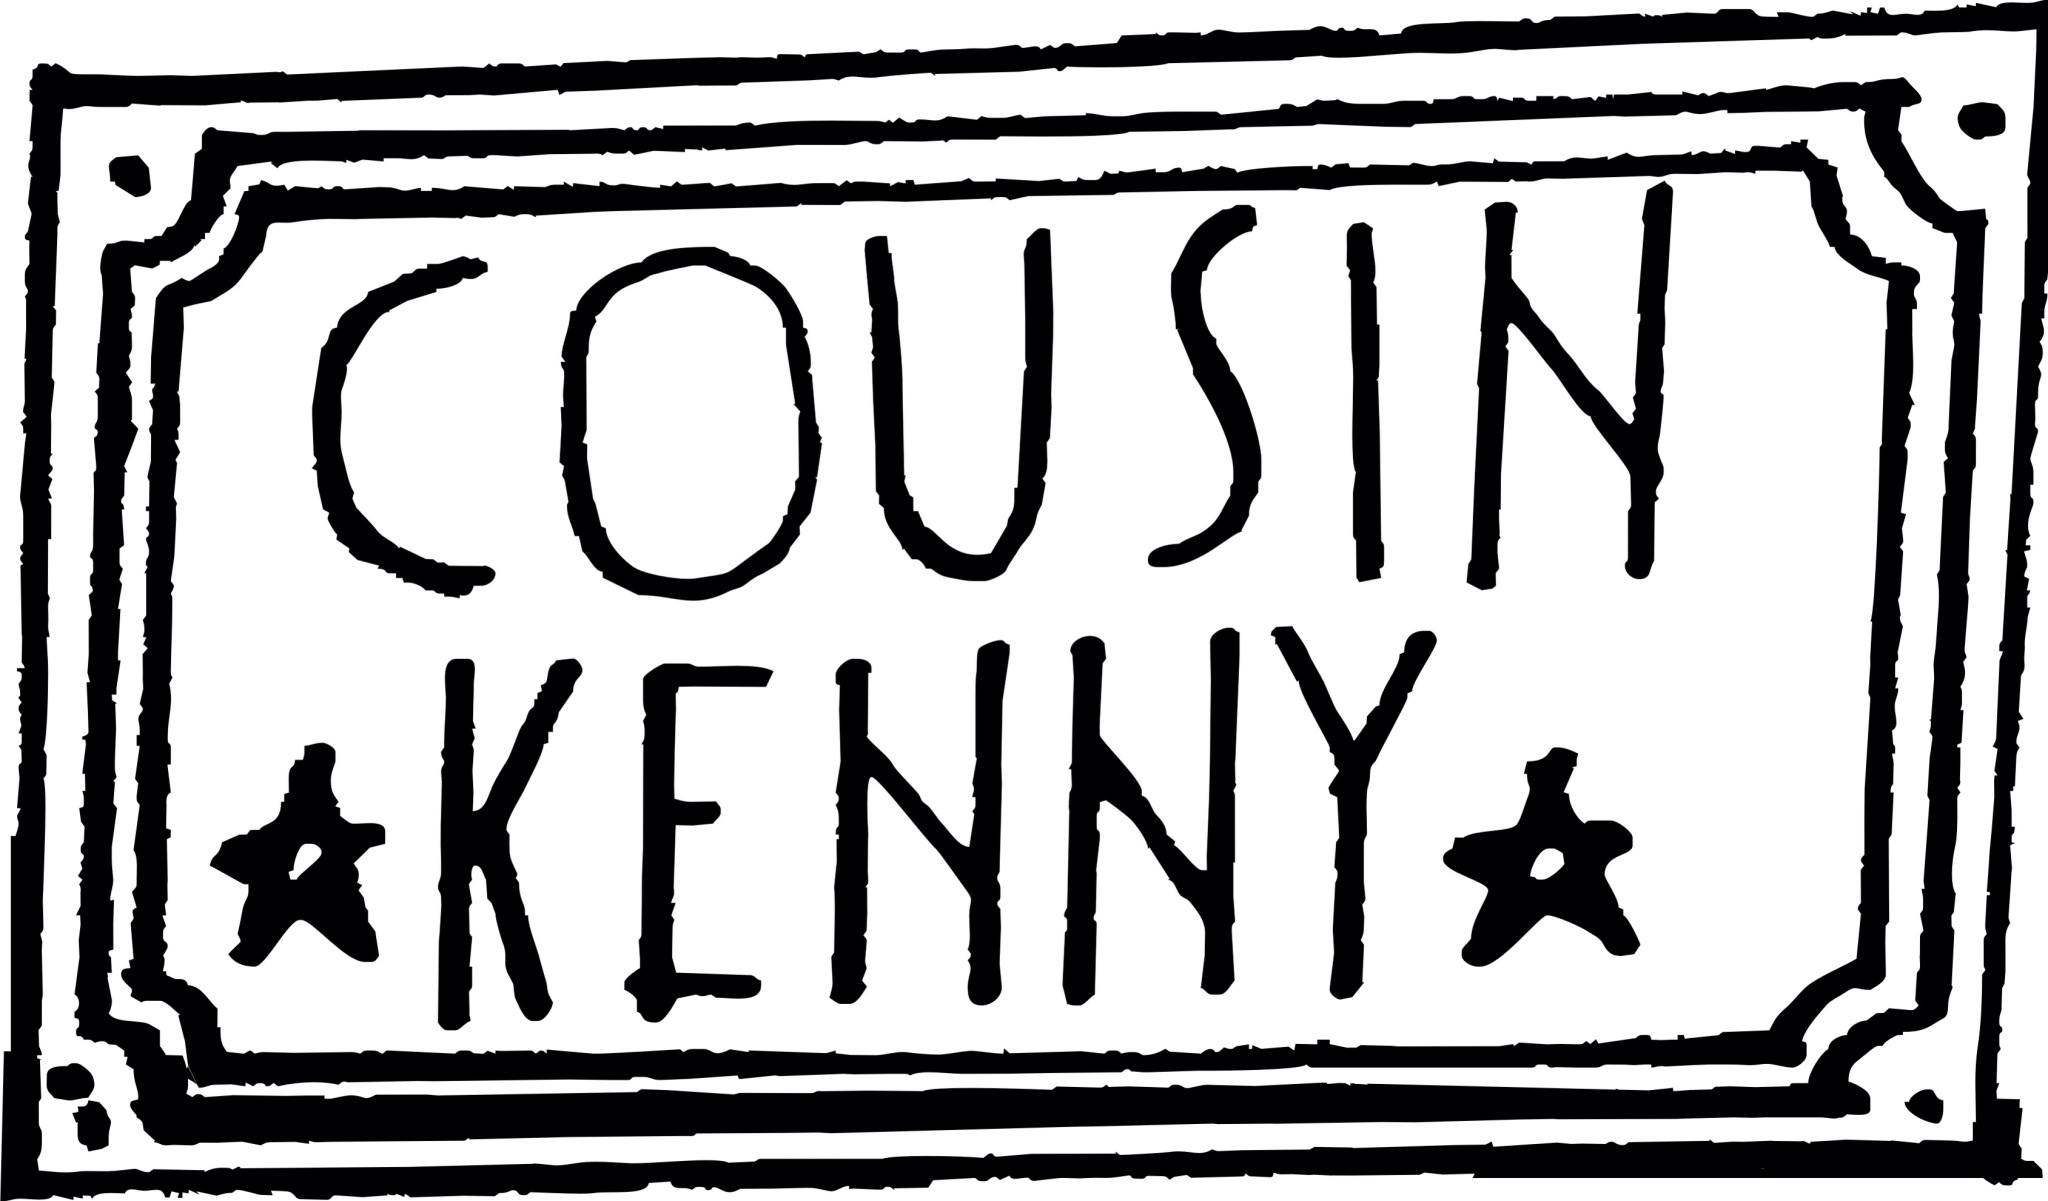 Cousin Kenny